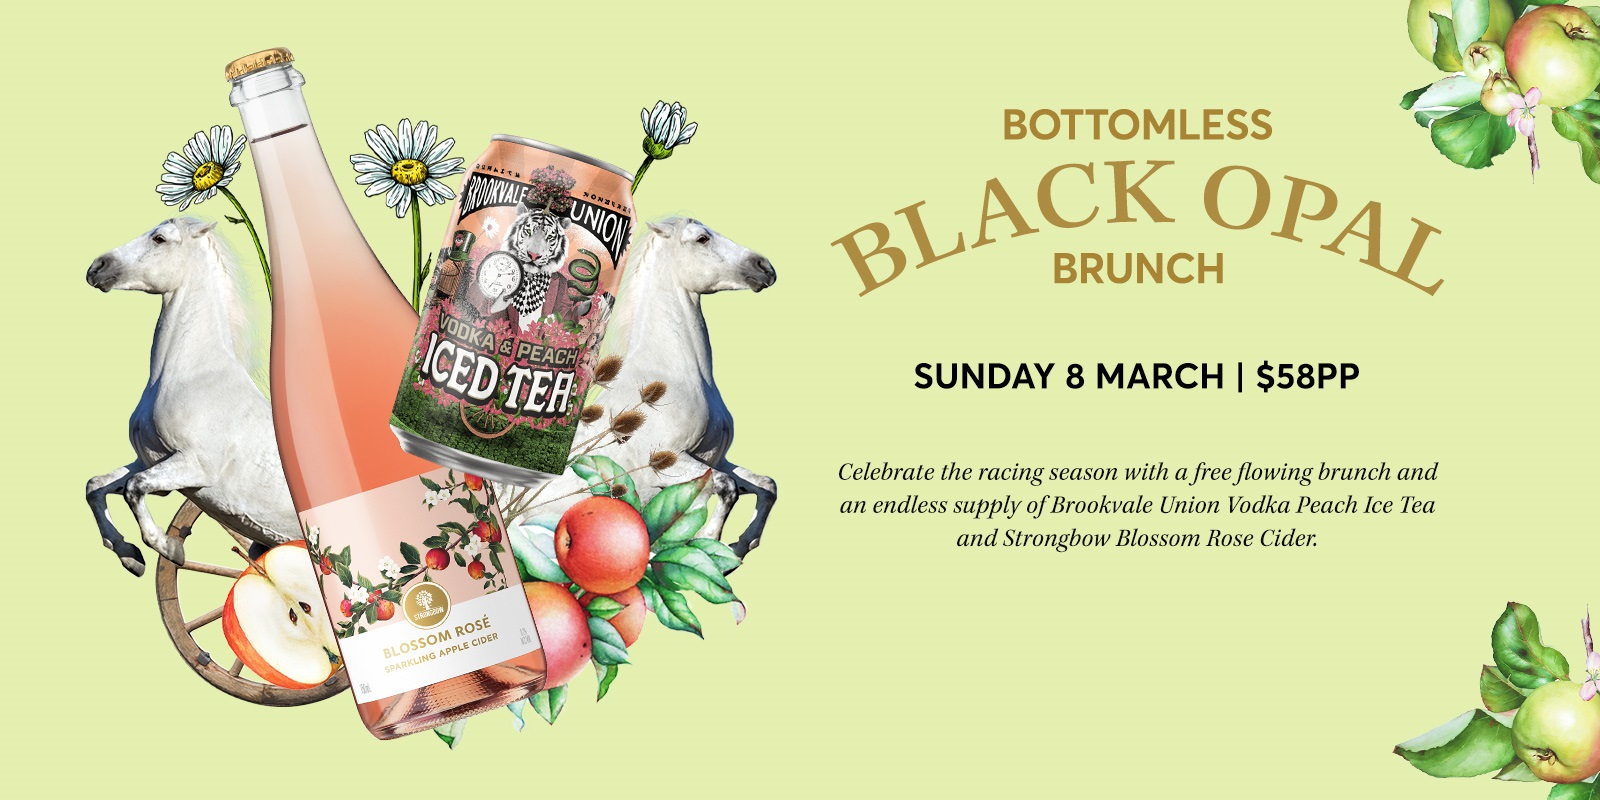 Bottomless 'Black Opal' Brunch Rectangle